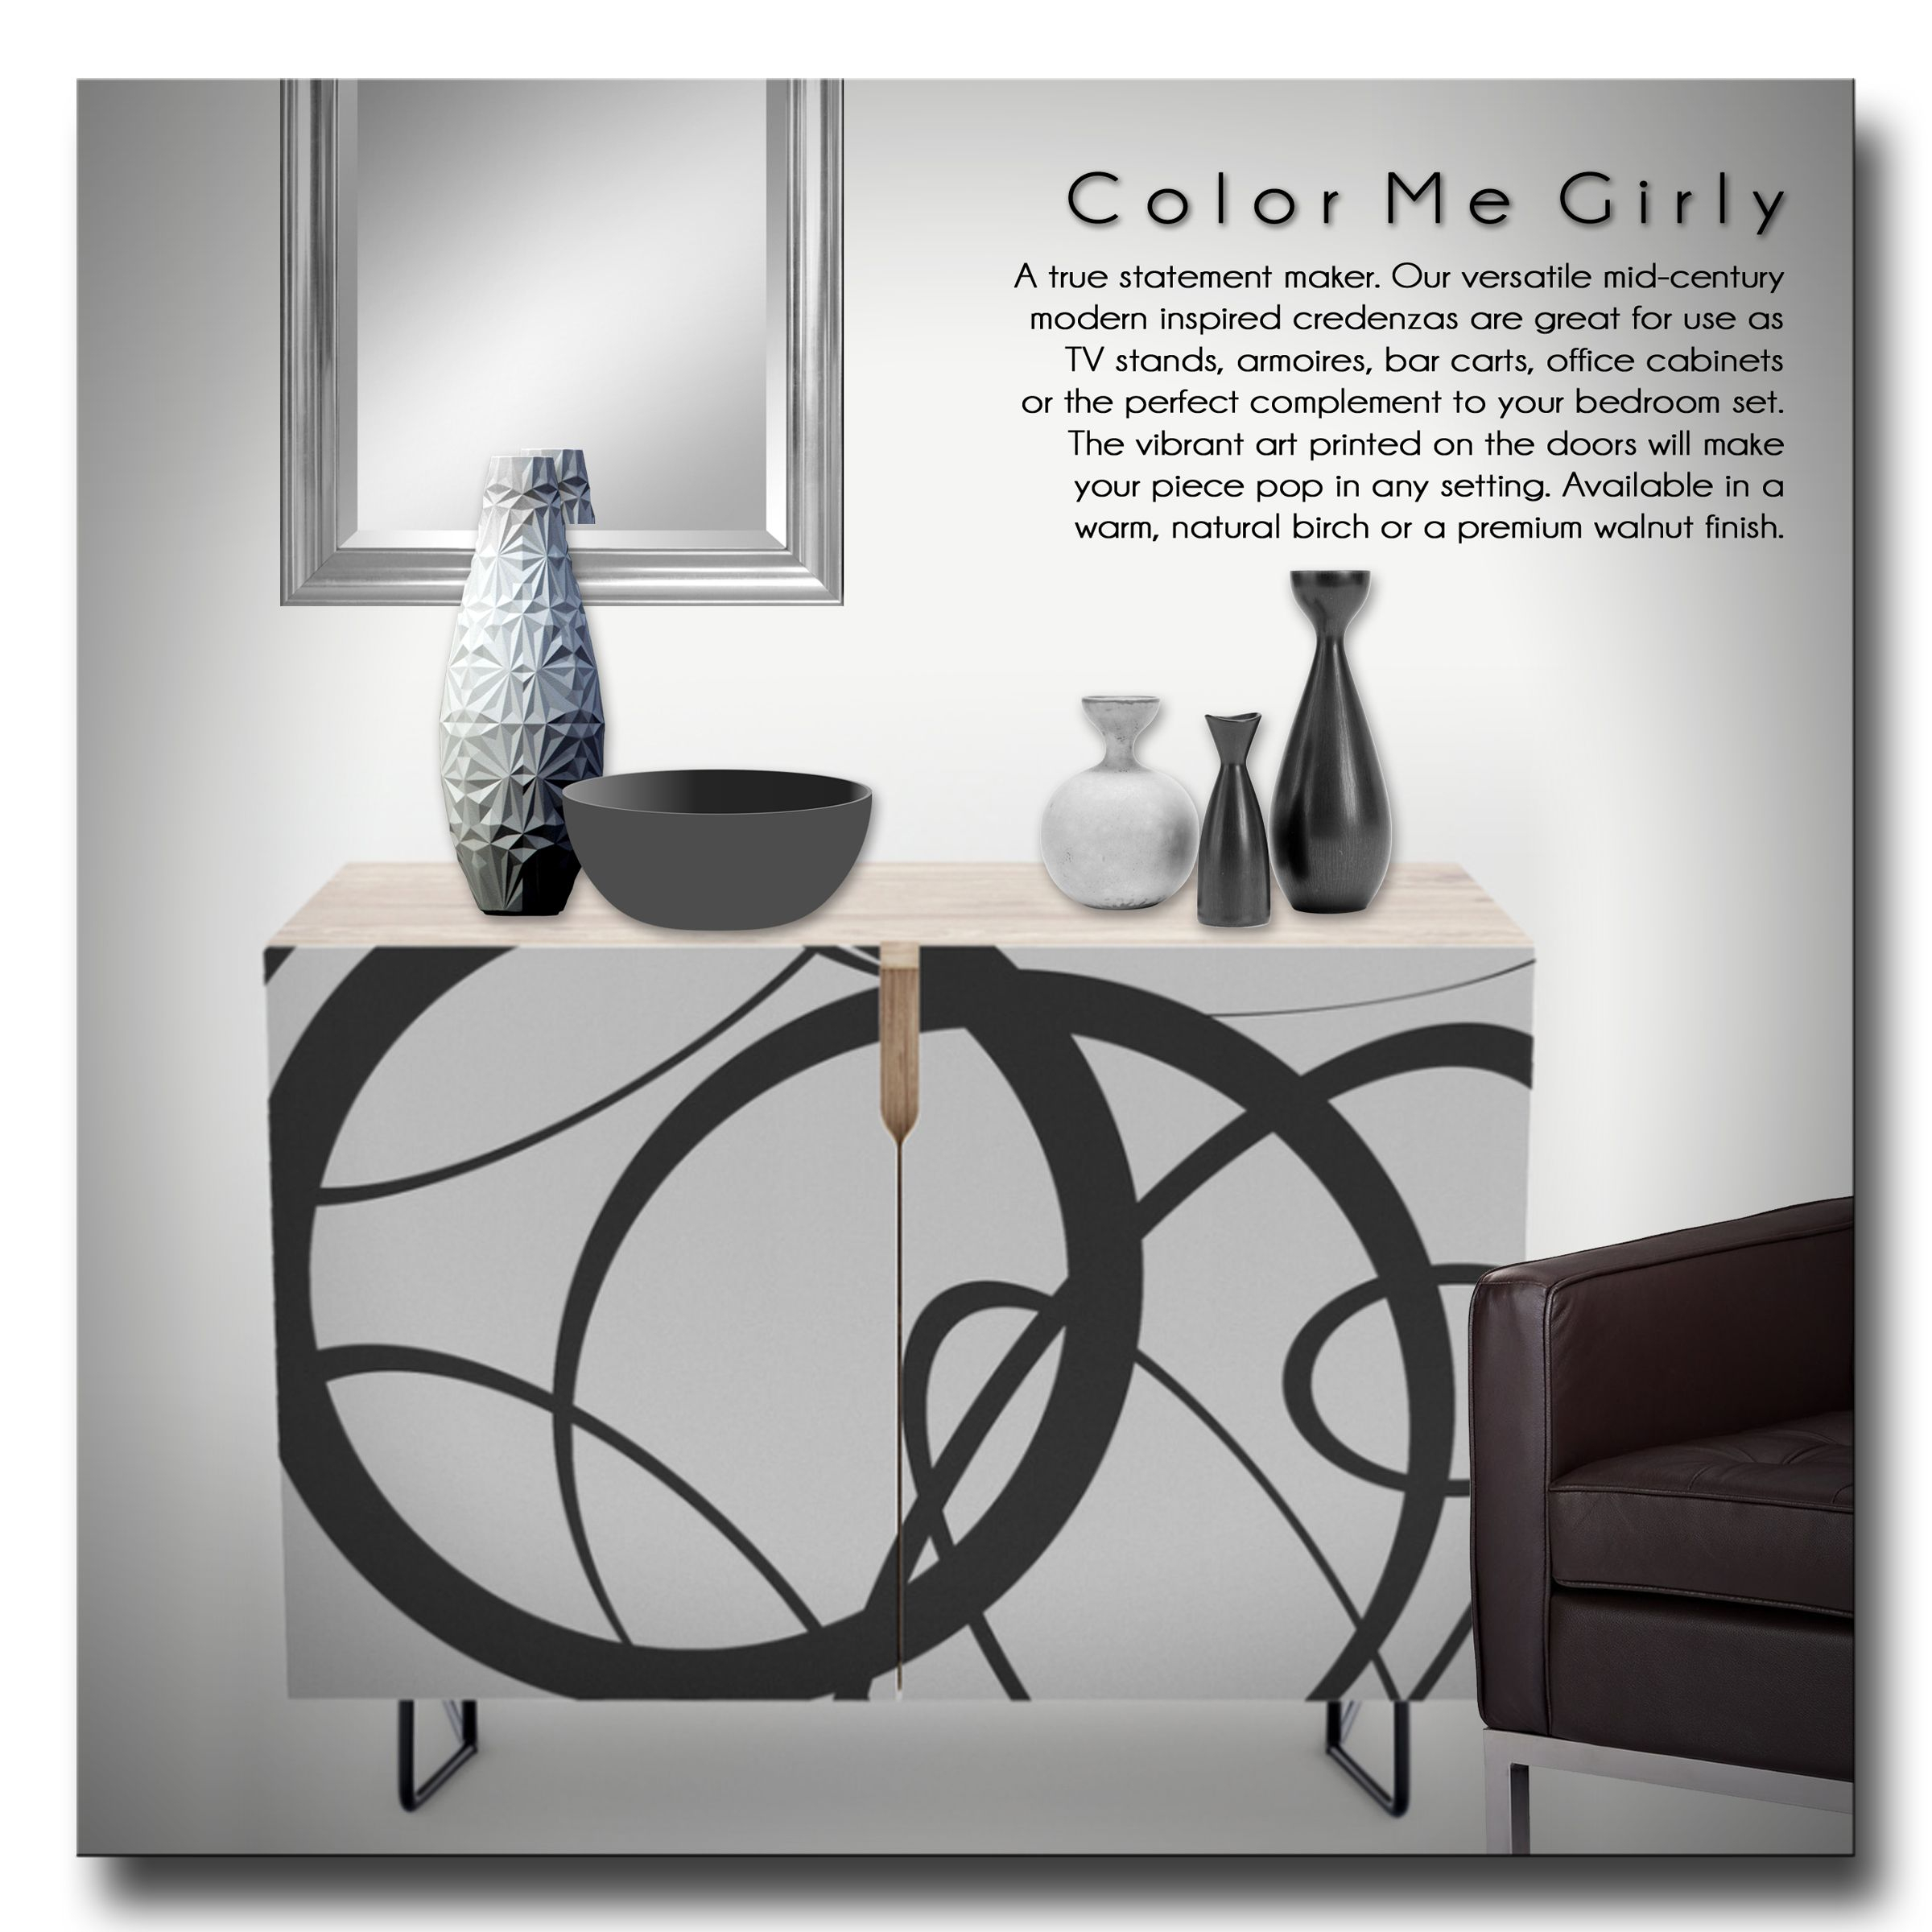 Random Abstract Shapes Credenza – Abstract, Shapes, Circle Pertaining To Geometric Shapes Credenzas (Gallery 6 of 30)